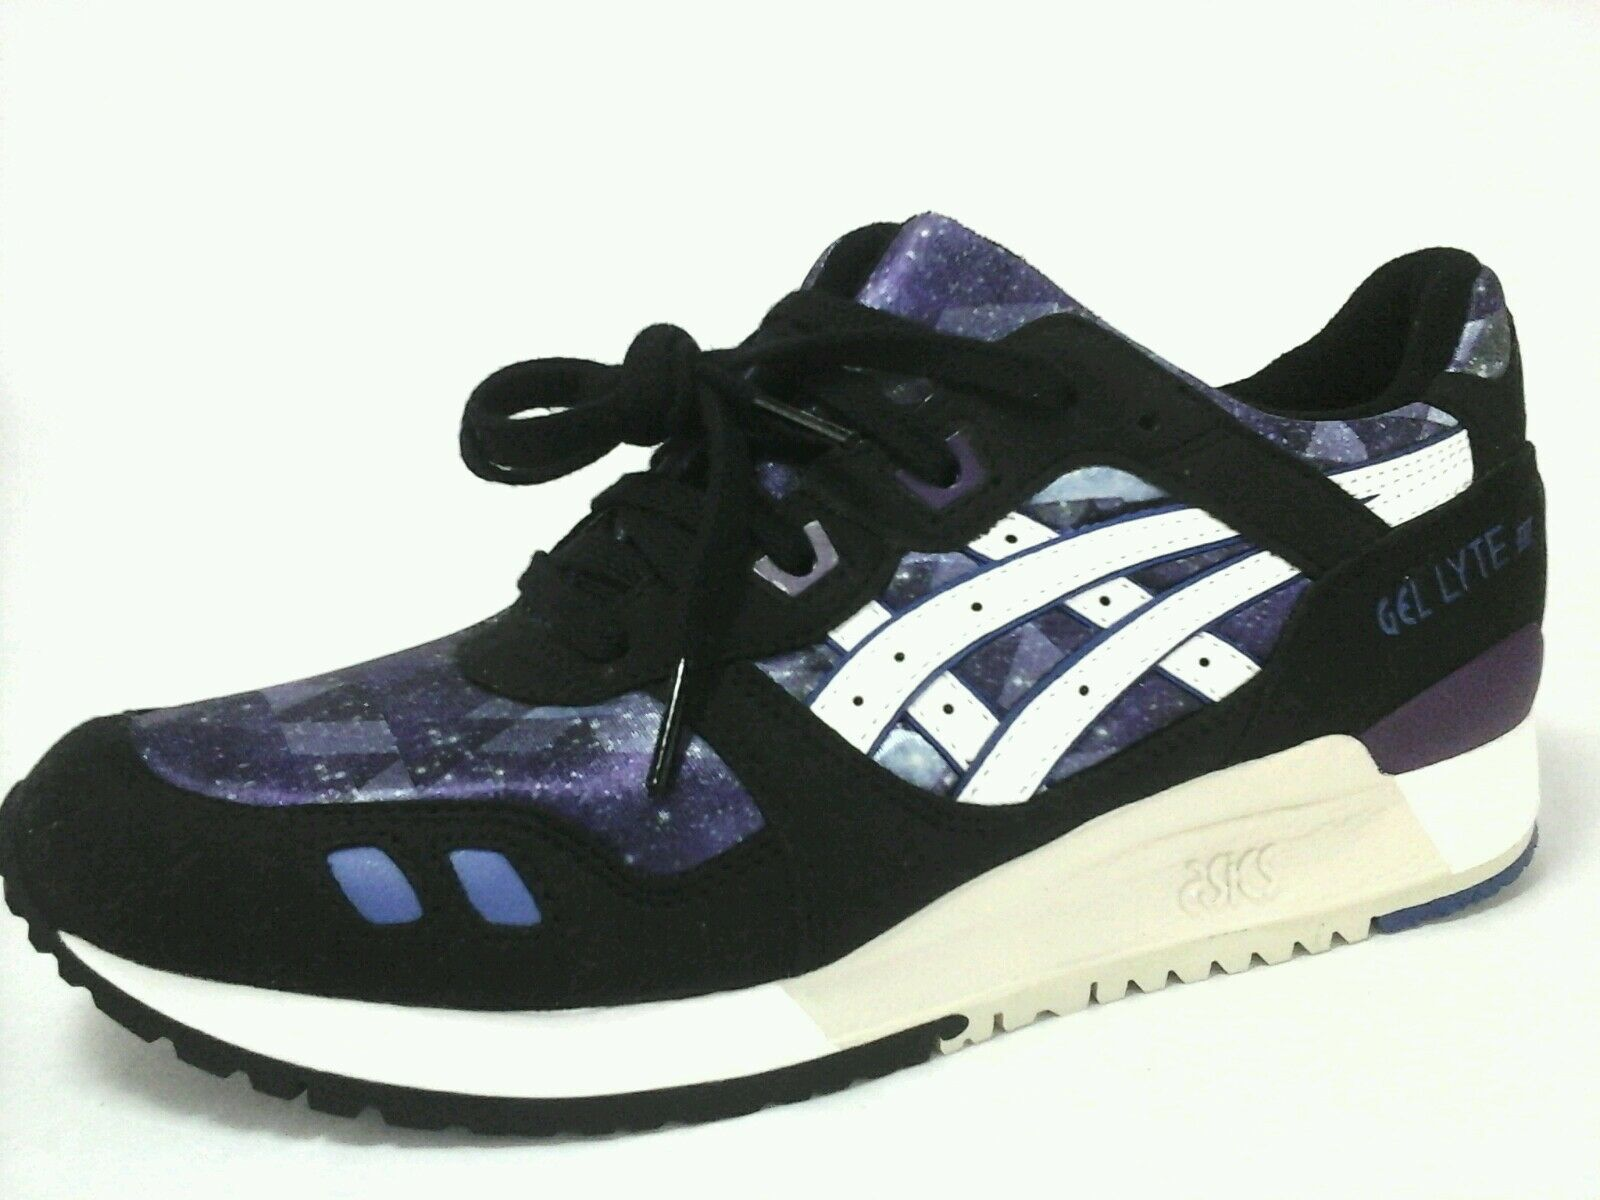 ASICS Sneakers Gel-Lyte III Purple Black SPACE Running Shoes Women 8.5/39.5 Price reduction Special limited time